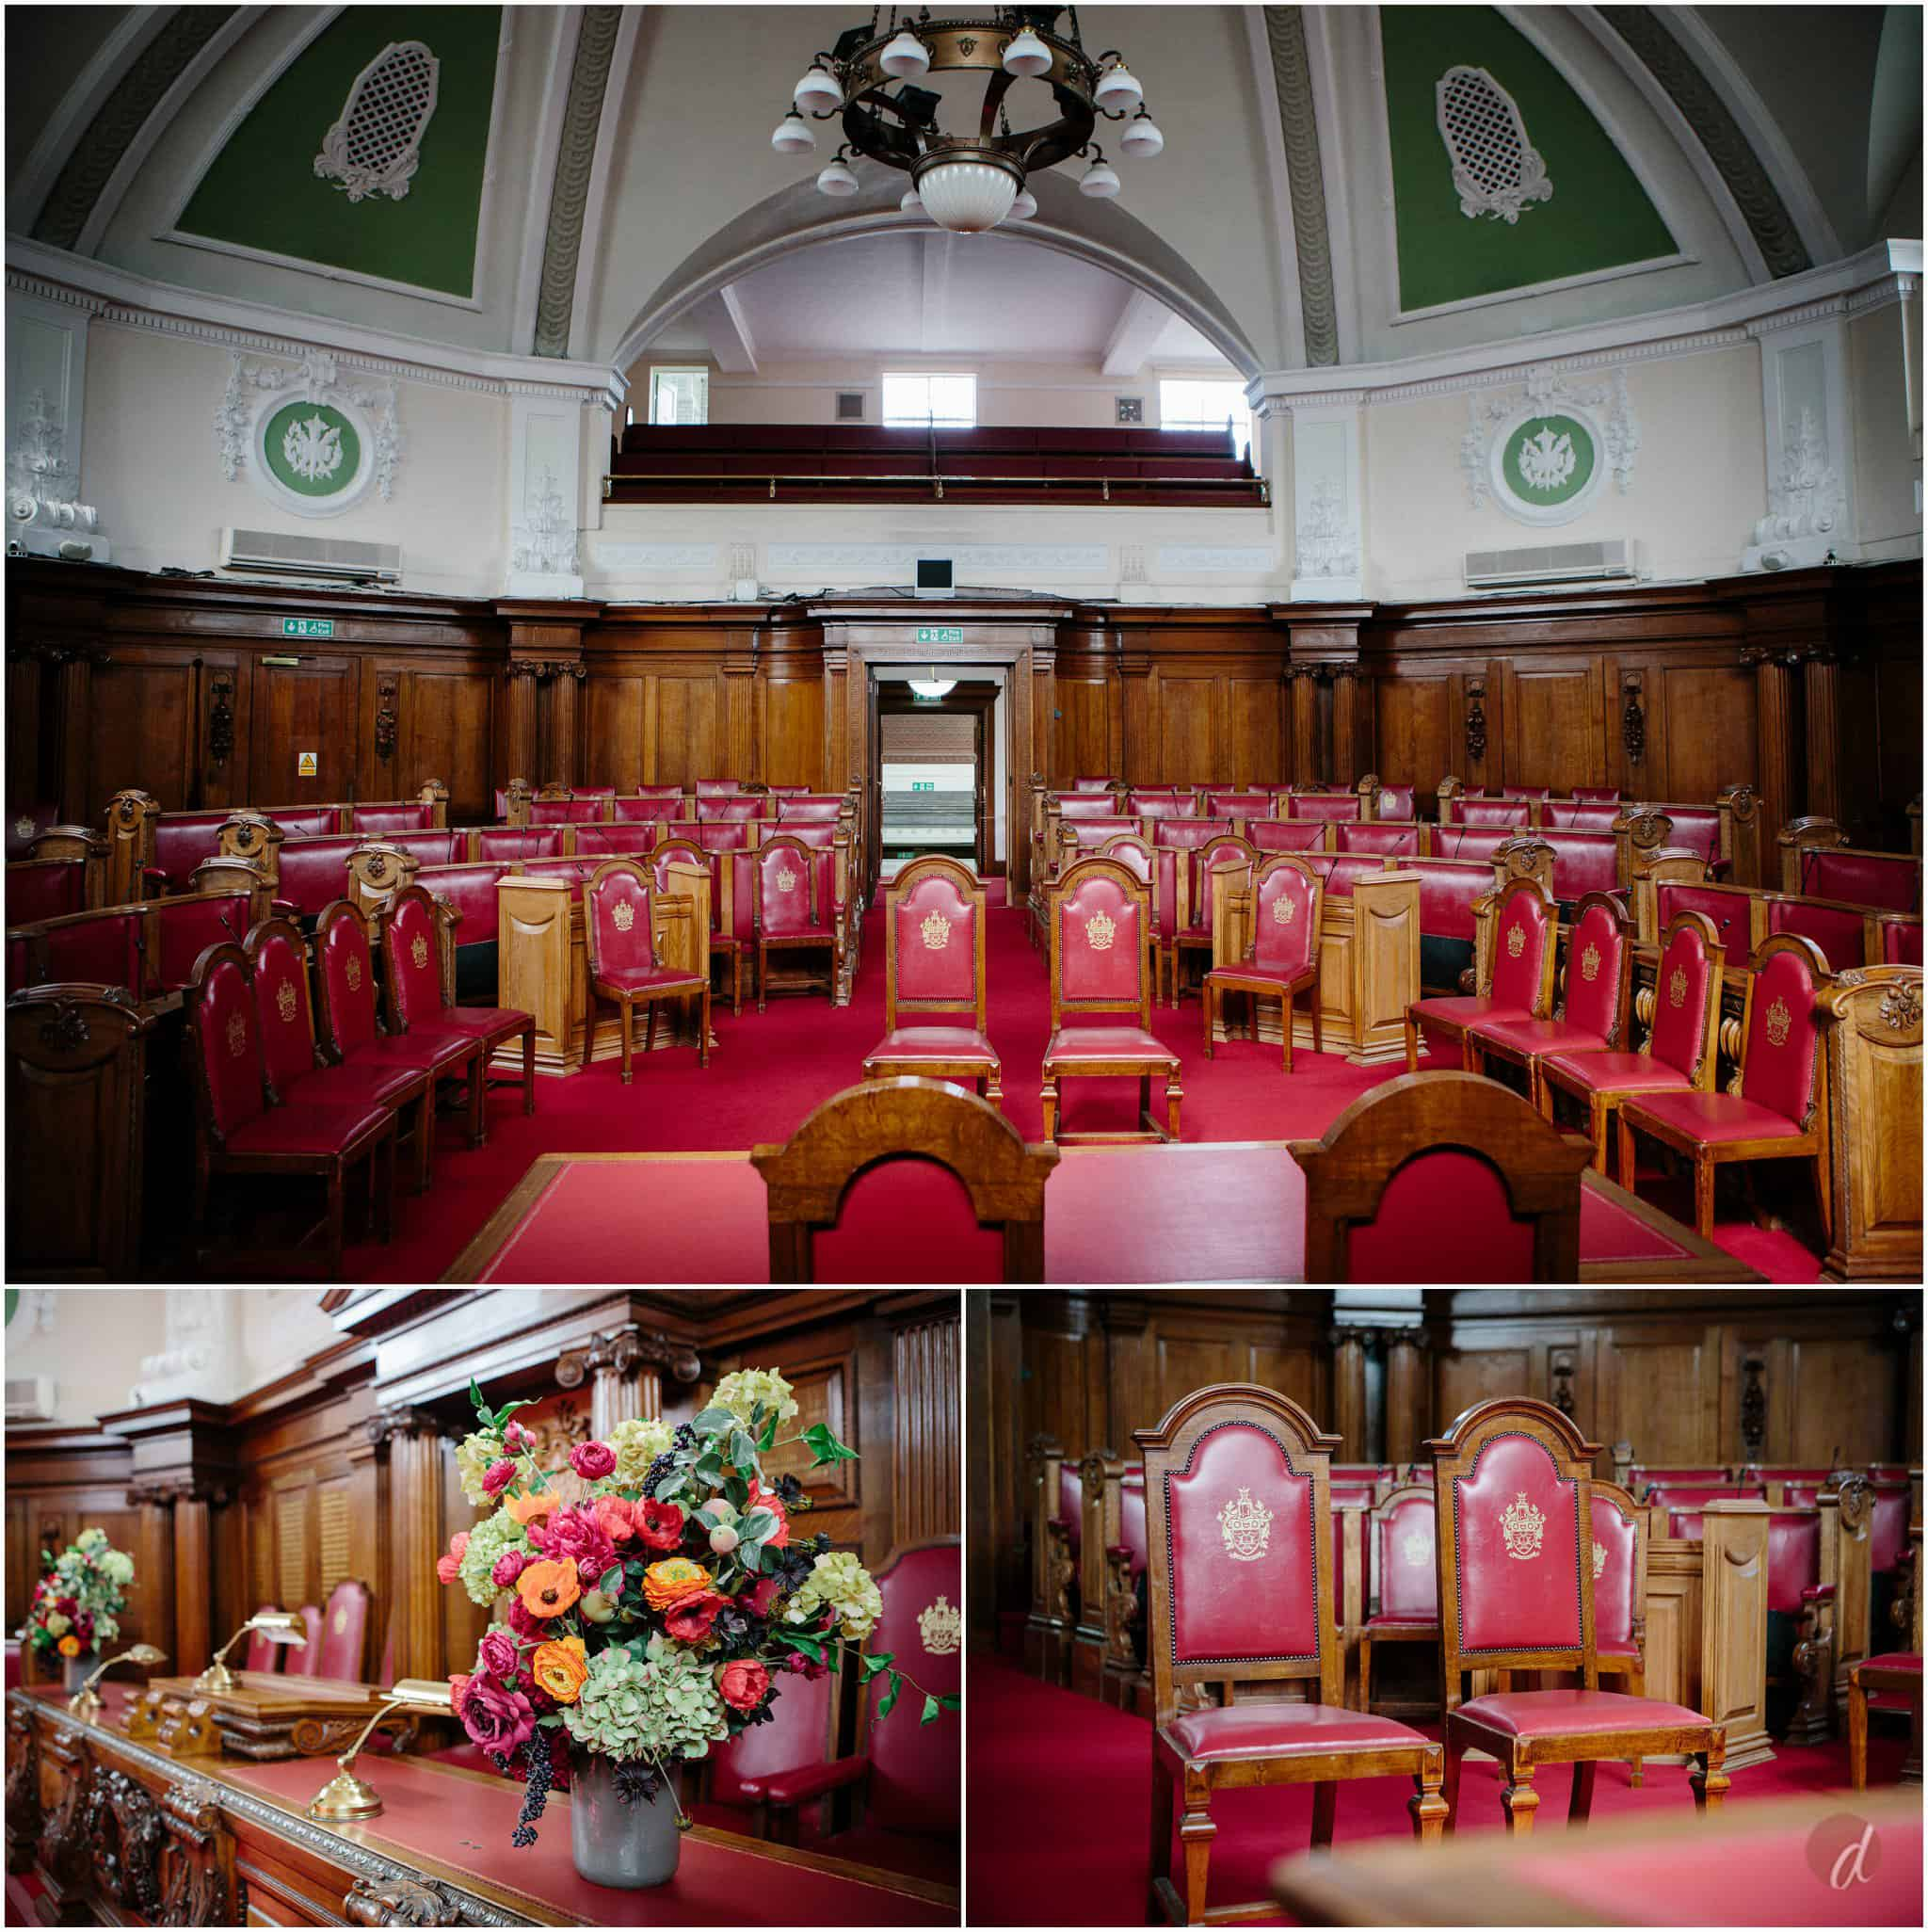 islilngton town hall council chamber wedding